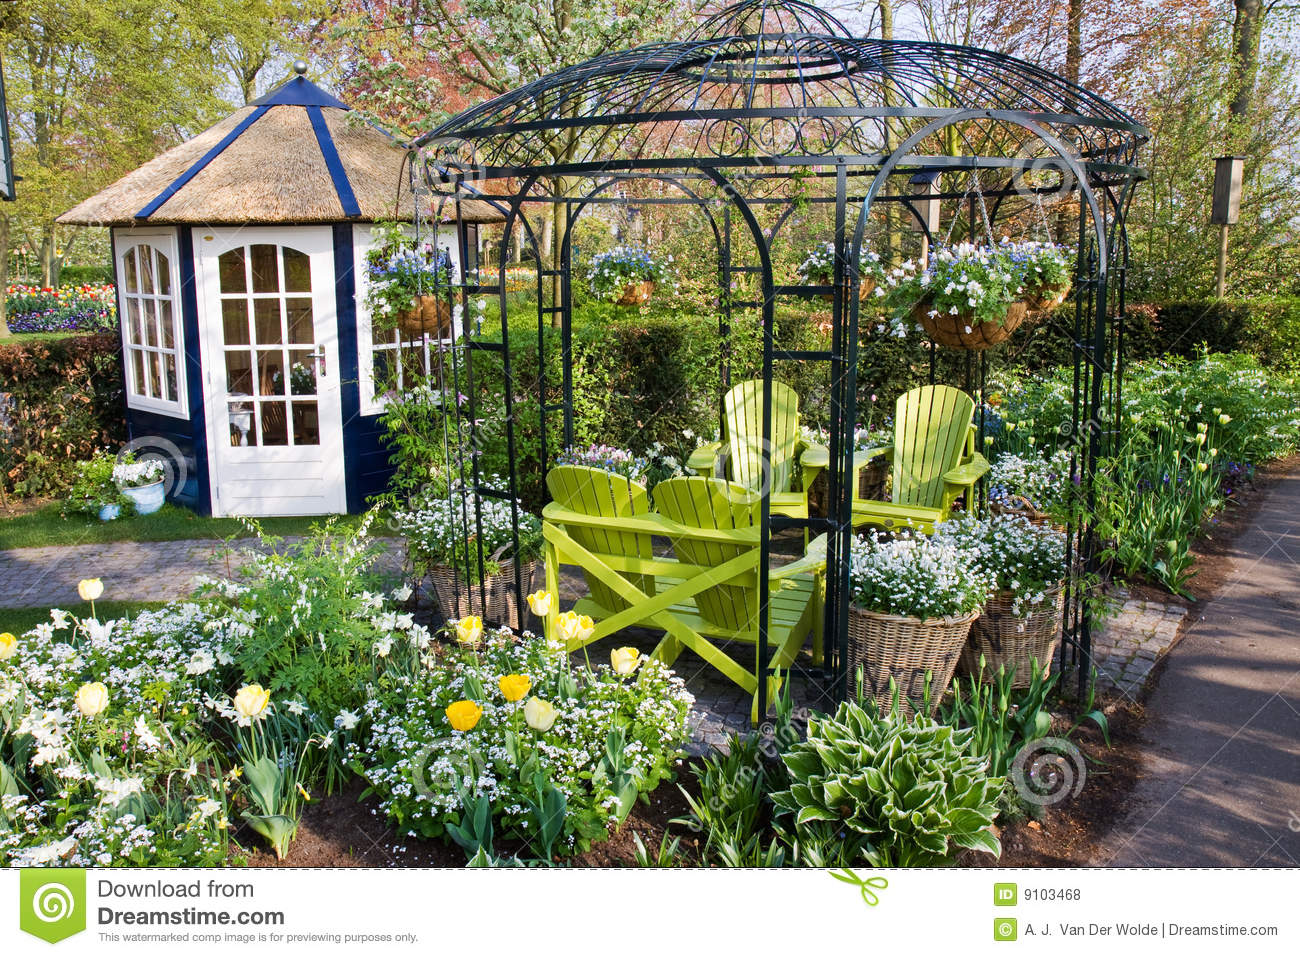 Pictures Nice Home Gardens : Nice garden house with chairs royalty free stock photos image